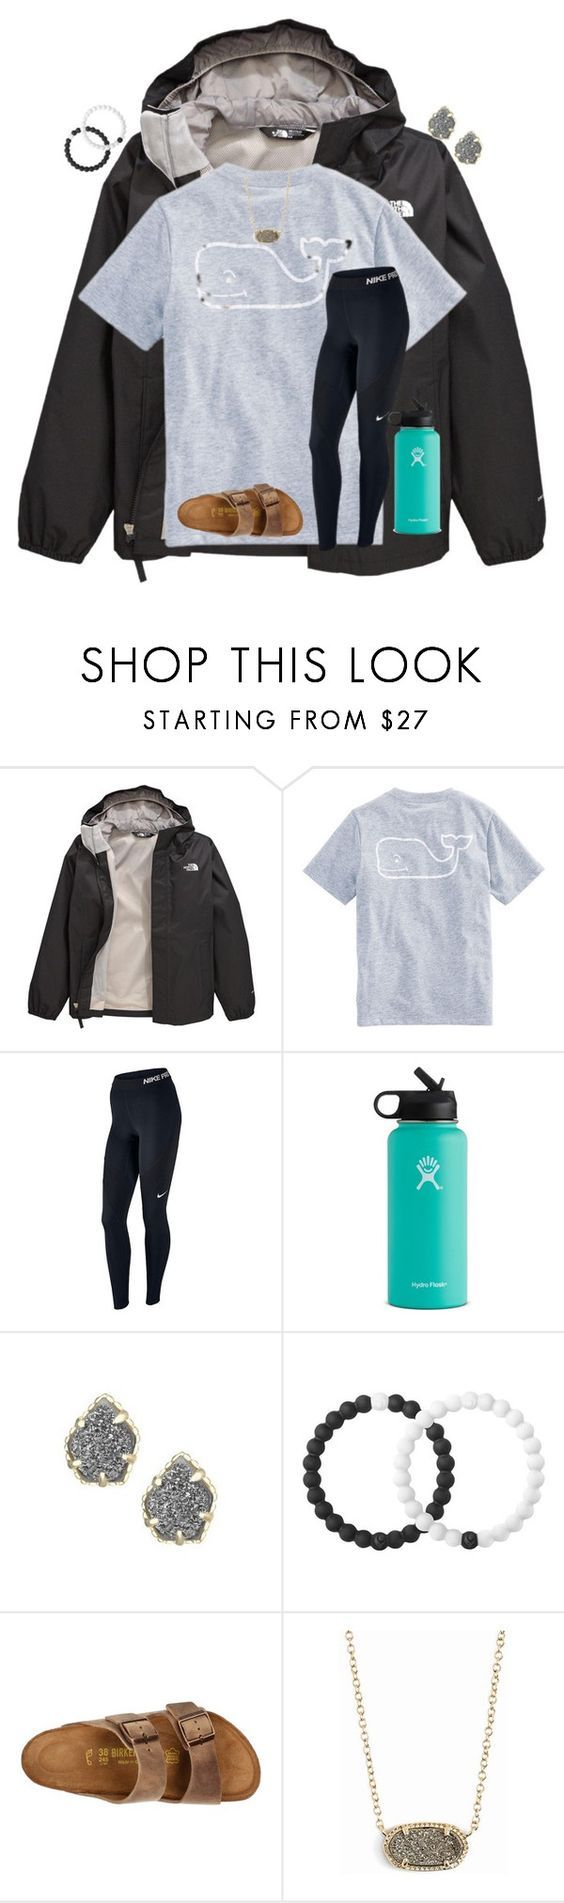 """good friday came in clutch ✌"" by preppy-renee ❤ liked on Polyvore featuring The North Face, Vineyard Vines, NIKE, Hydro Flask, Kendra Scott, Lokai and Birkenstock"